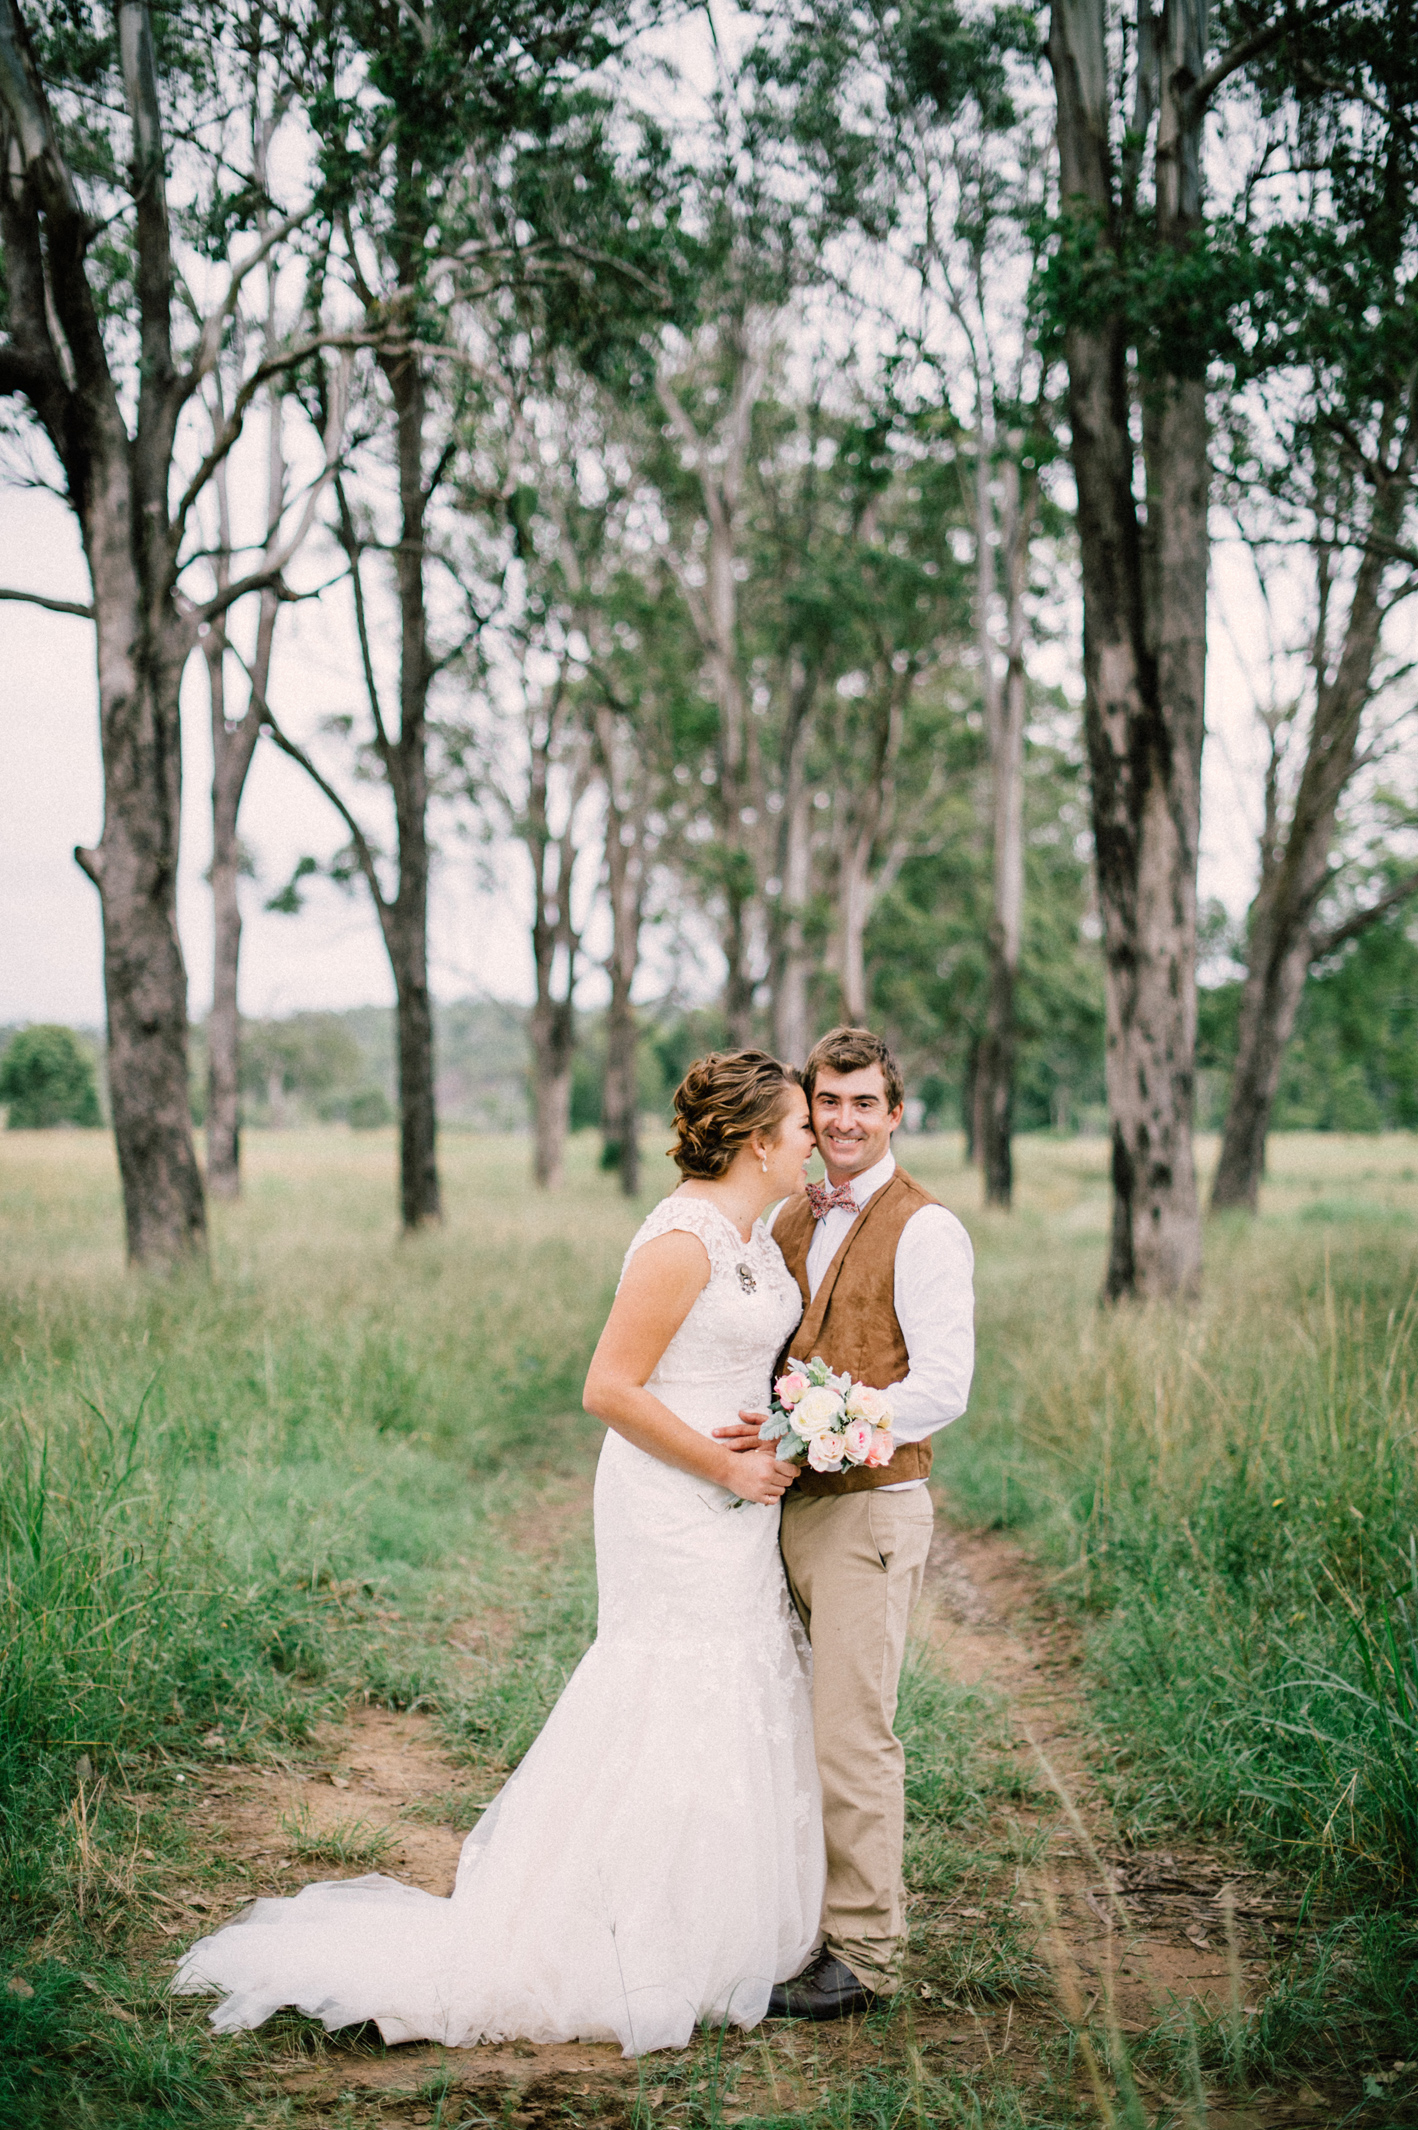 086-kayla-james-beaudesert-wedding-sophie-baker-photography